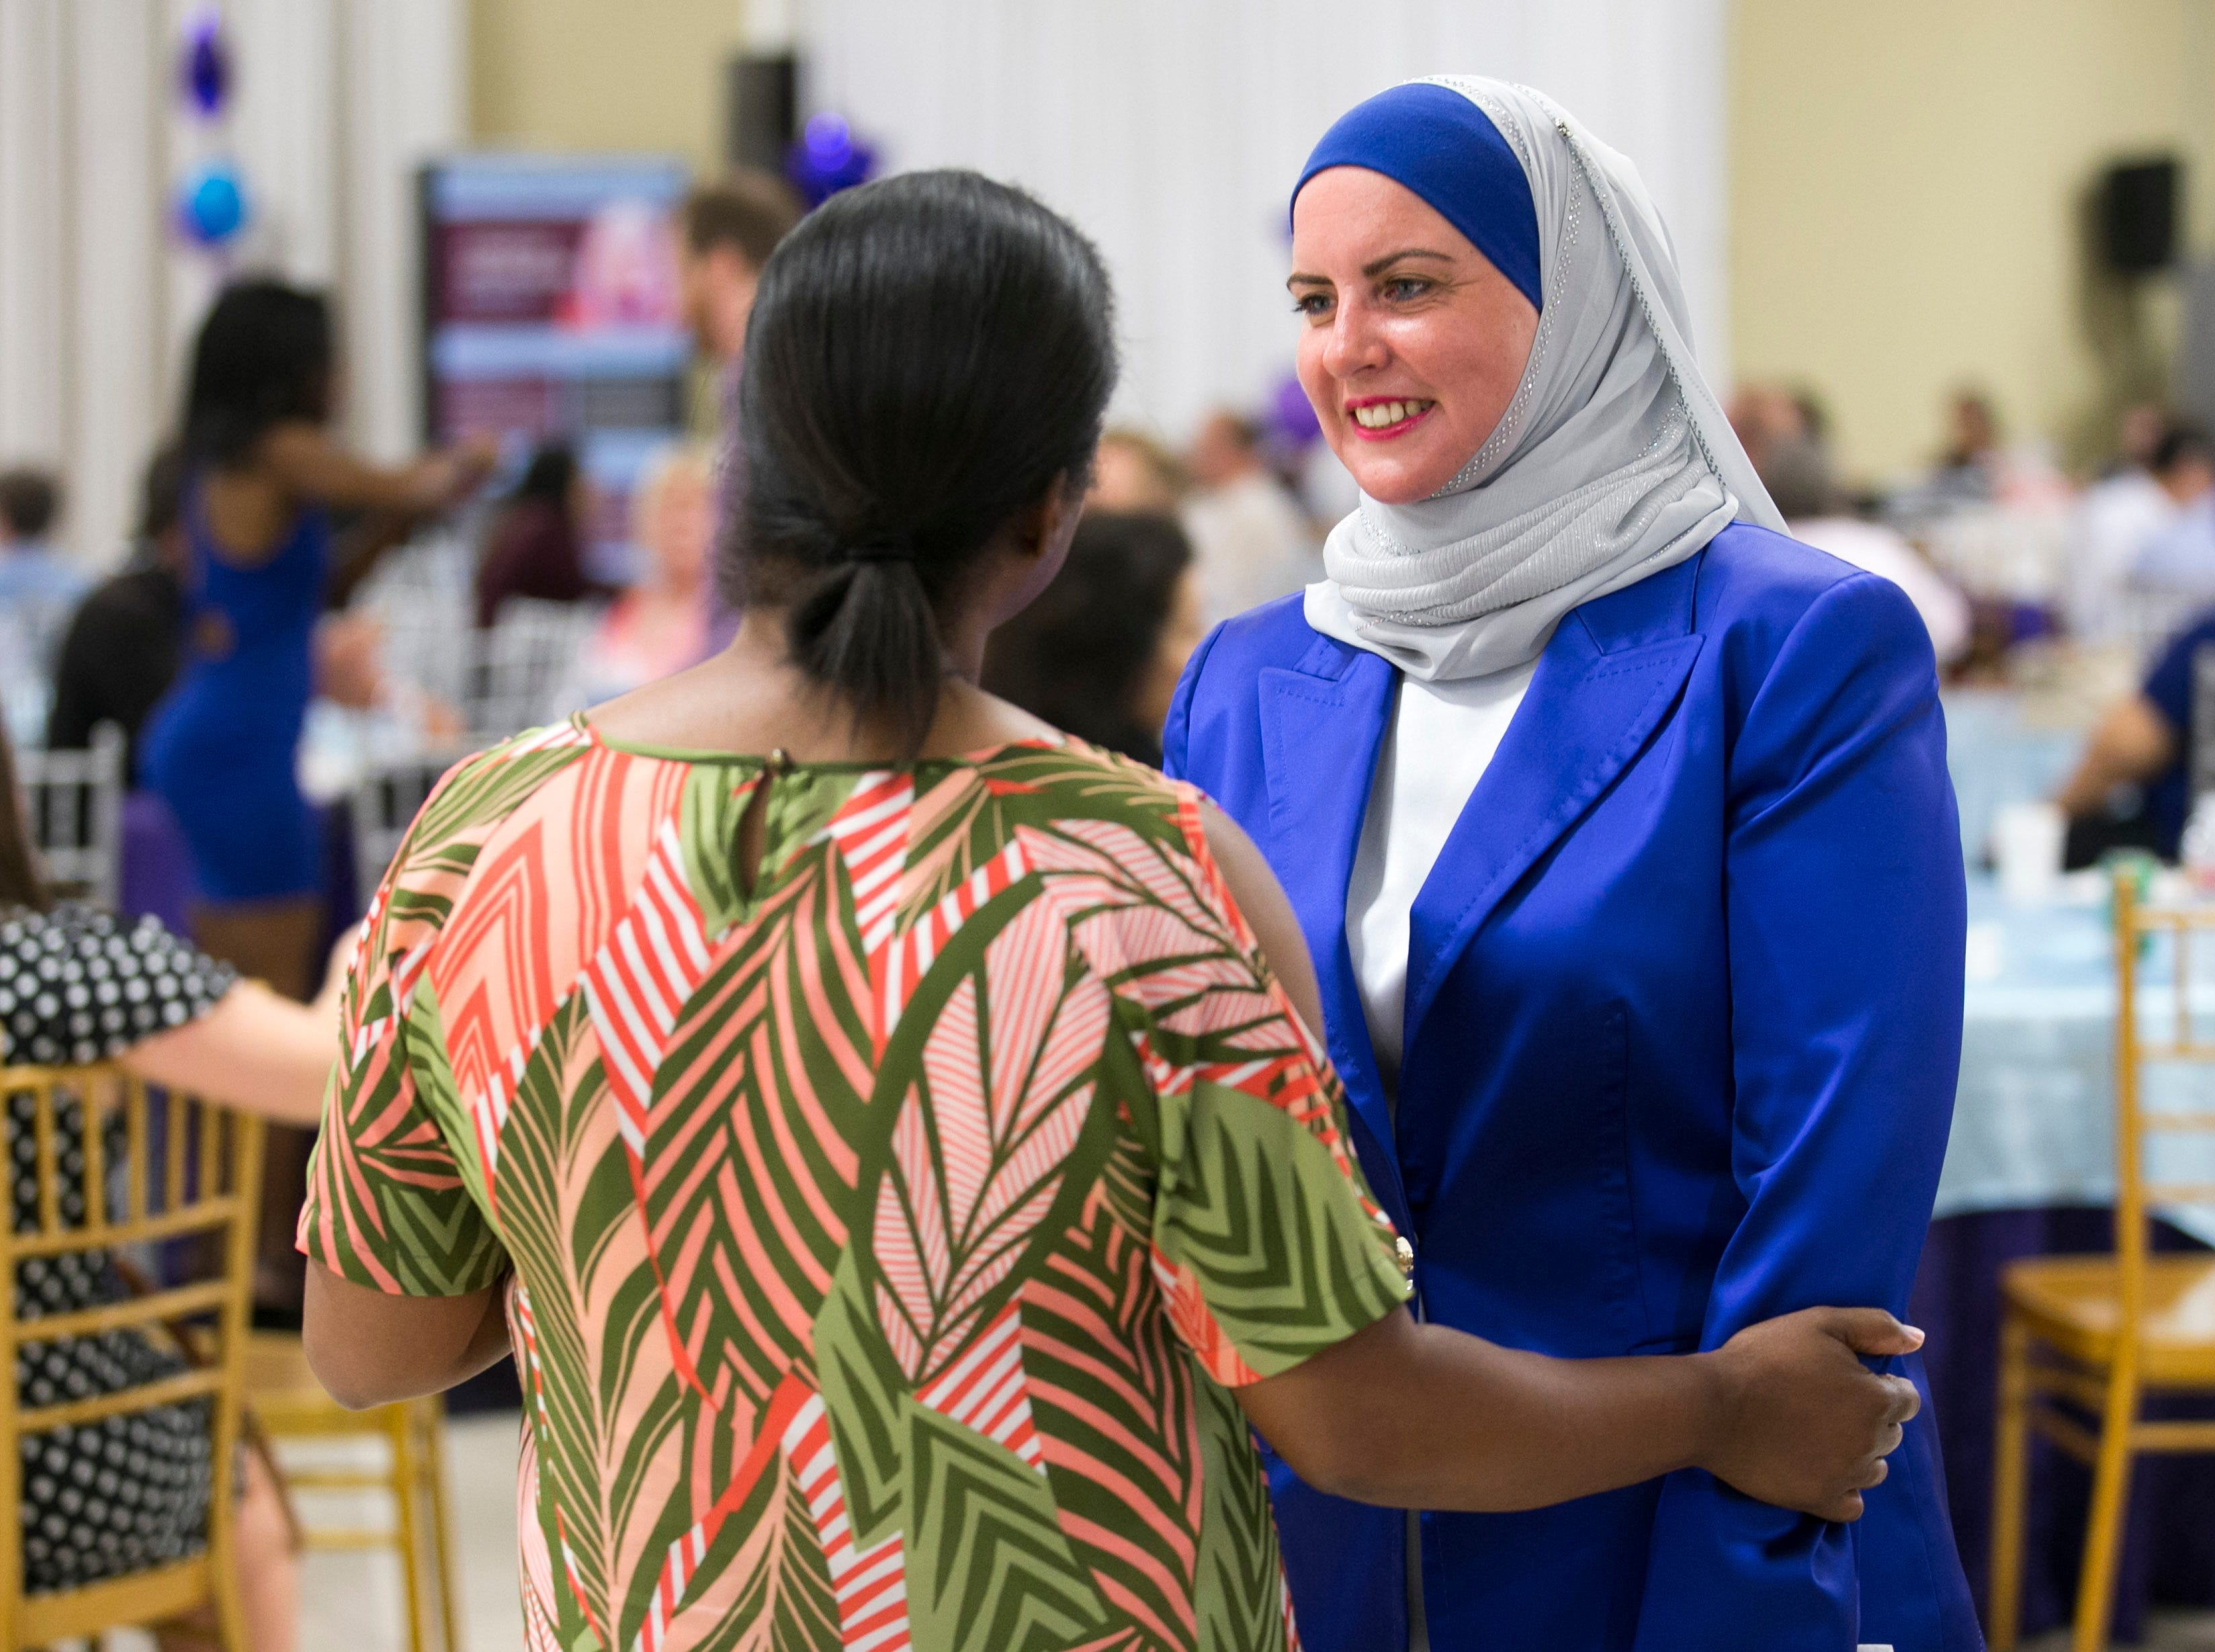 Deedra Abboud, who is vying for the Democratic nomination for the U.S. Senate seat, talks with a supporter at a watch party for the Arizona primary at Pearls Banquet Hall in Mesa on Tuesday evening, August 28, 2018.